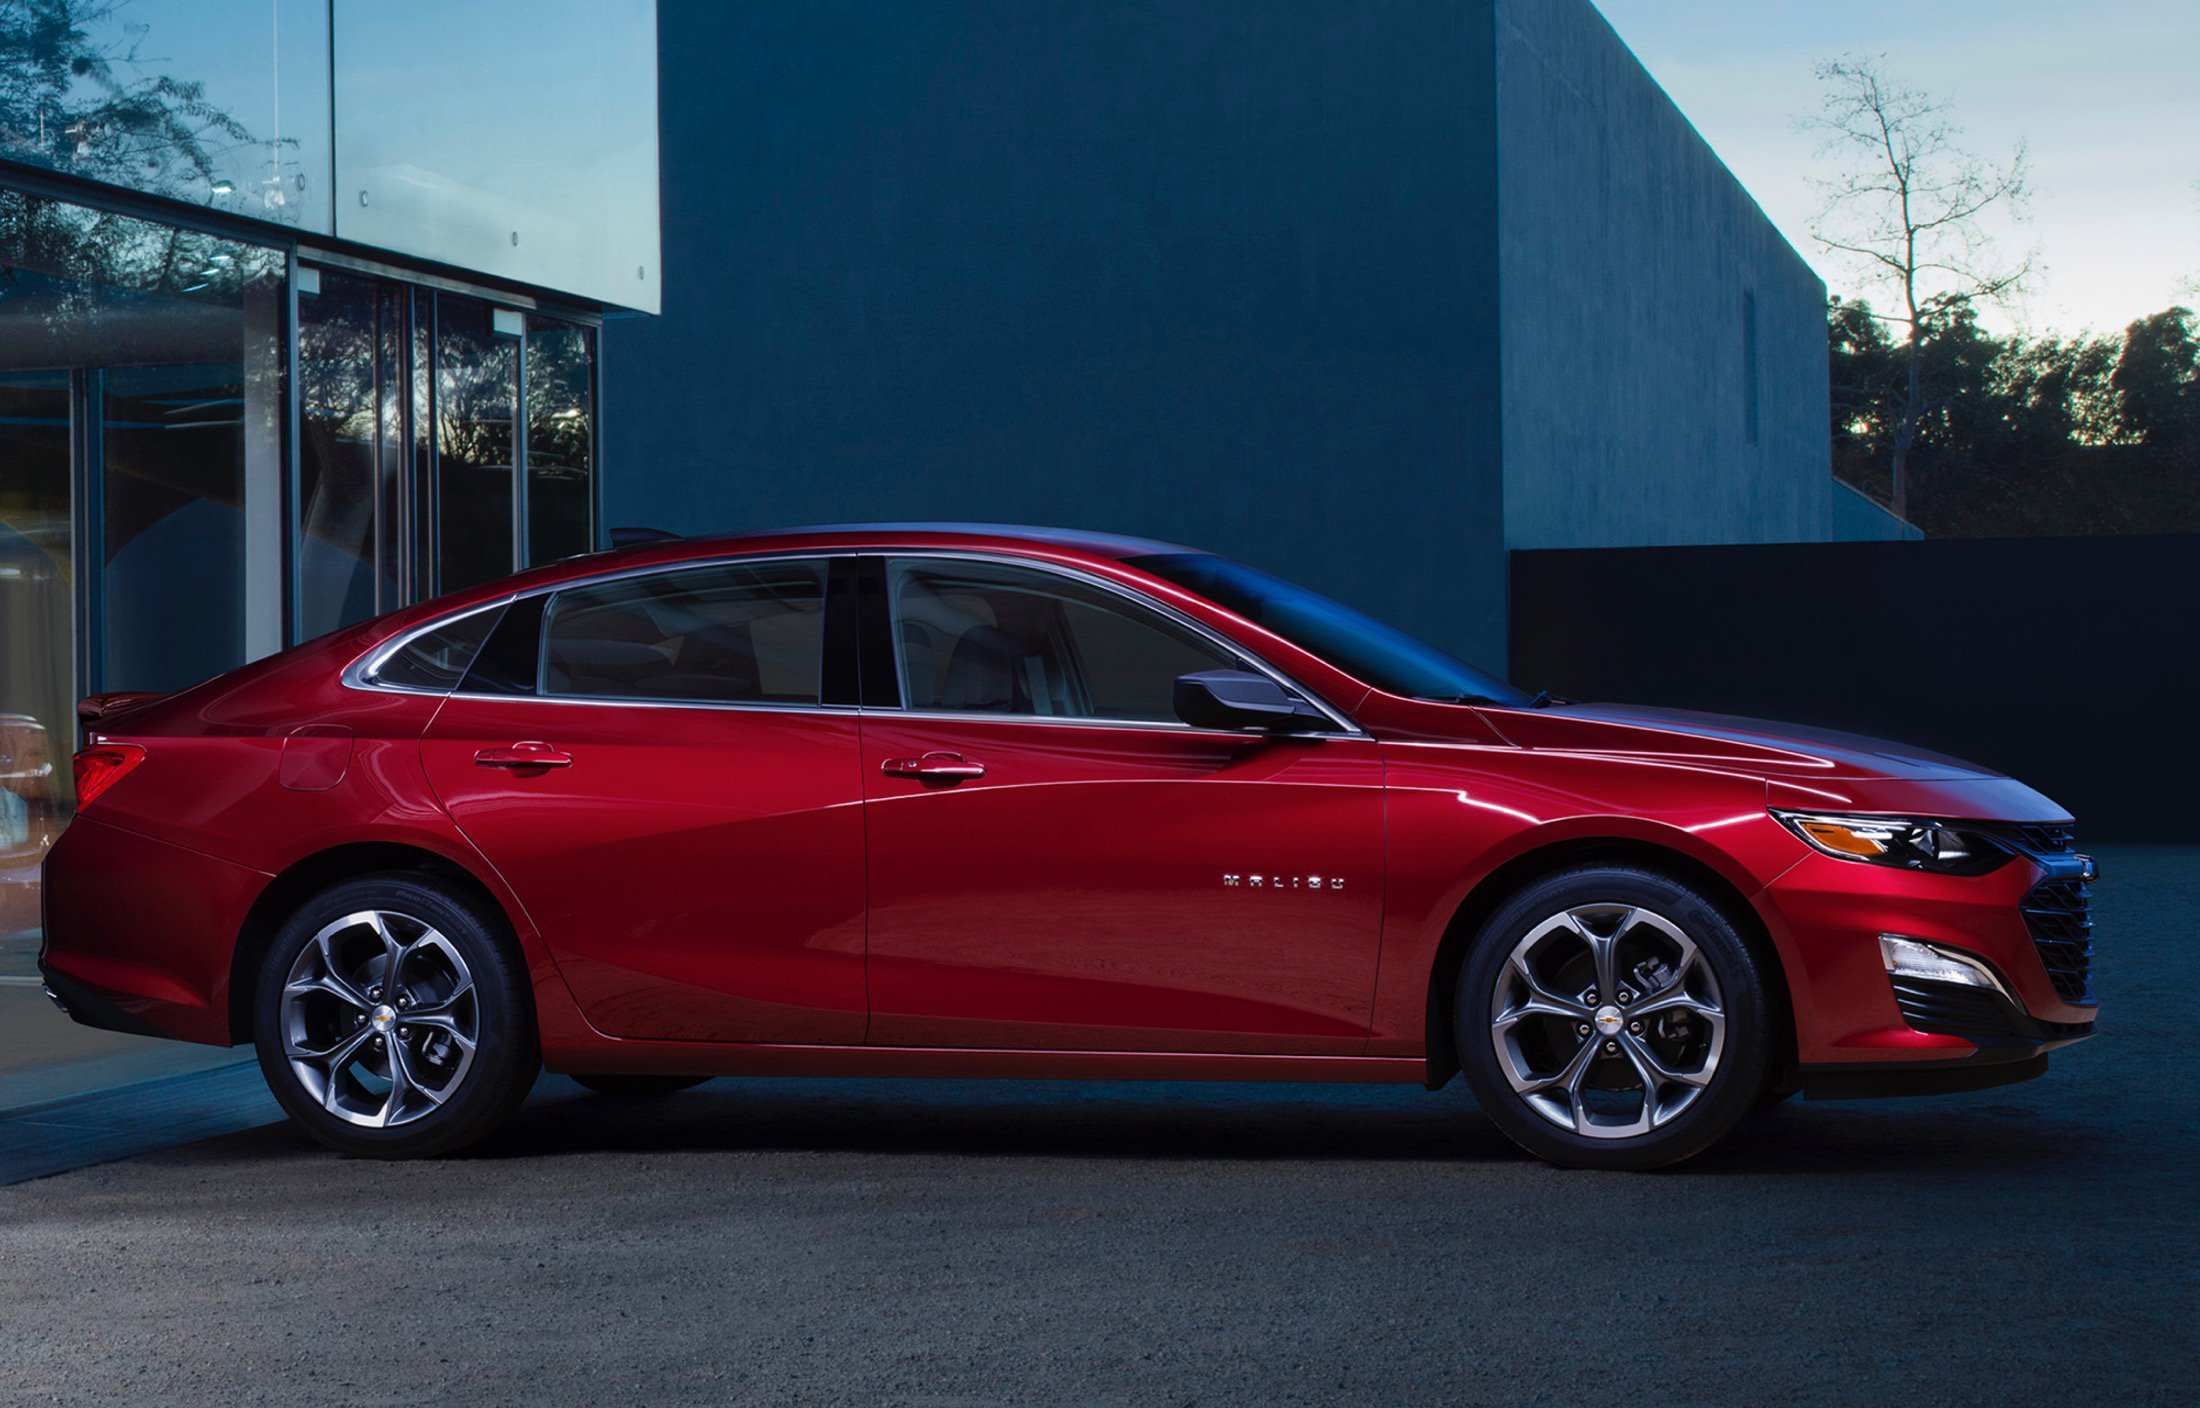 68 New 2019 Chevy Malibu Redesign And Concept